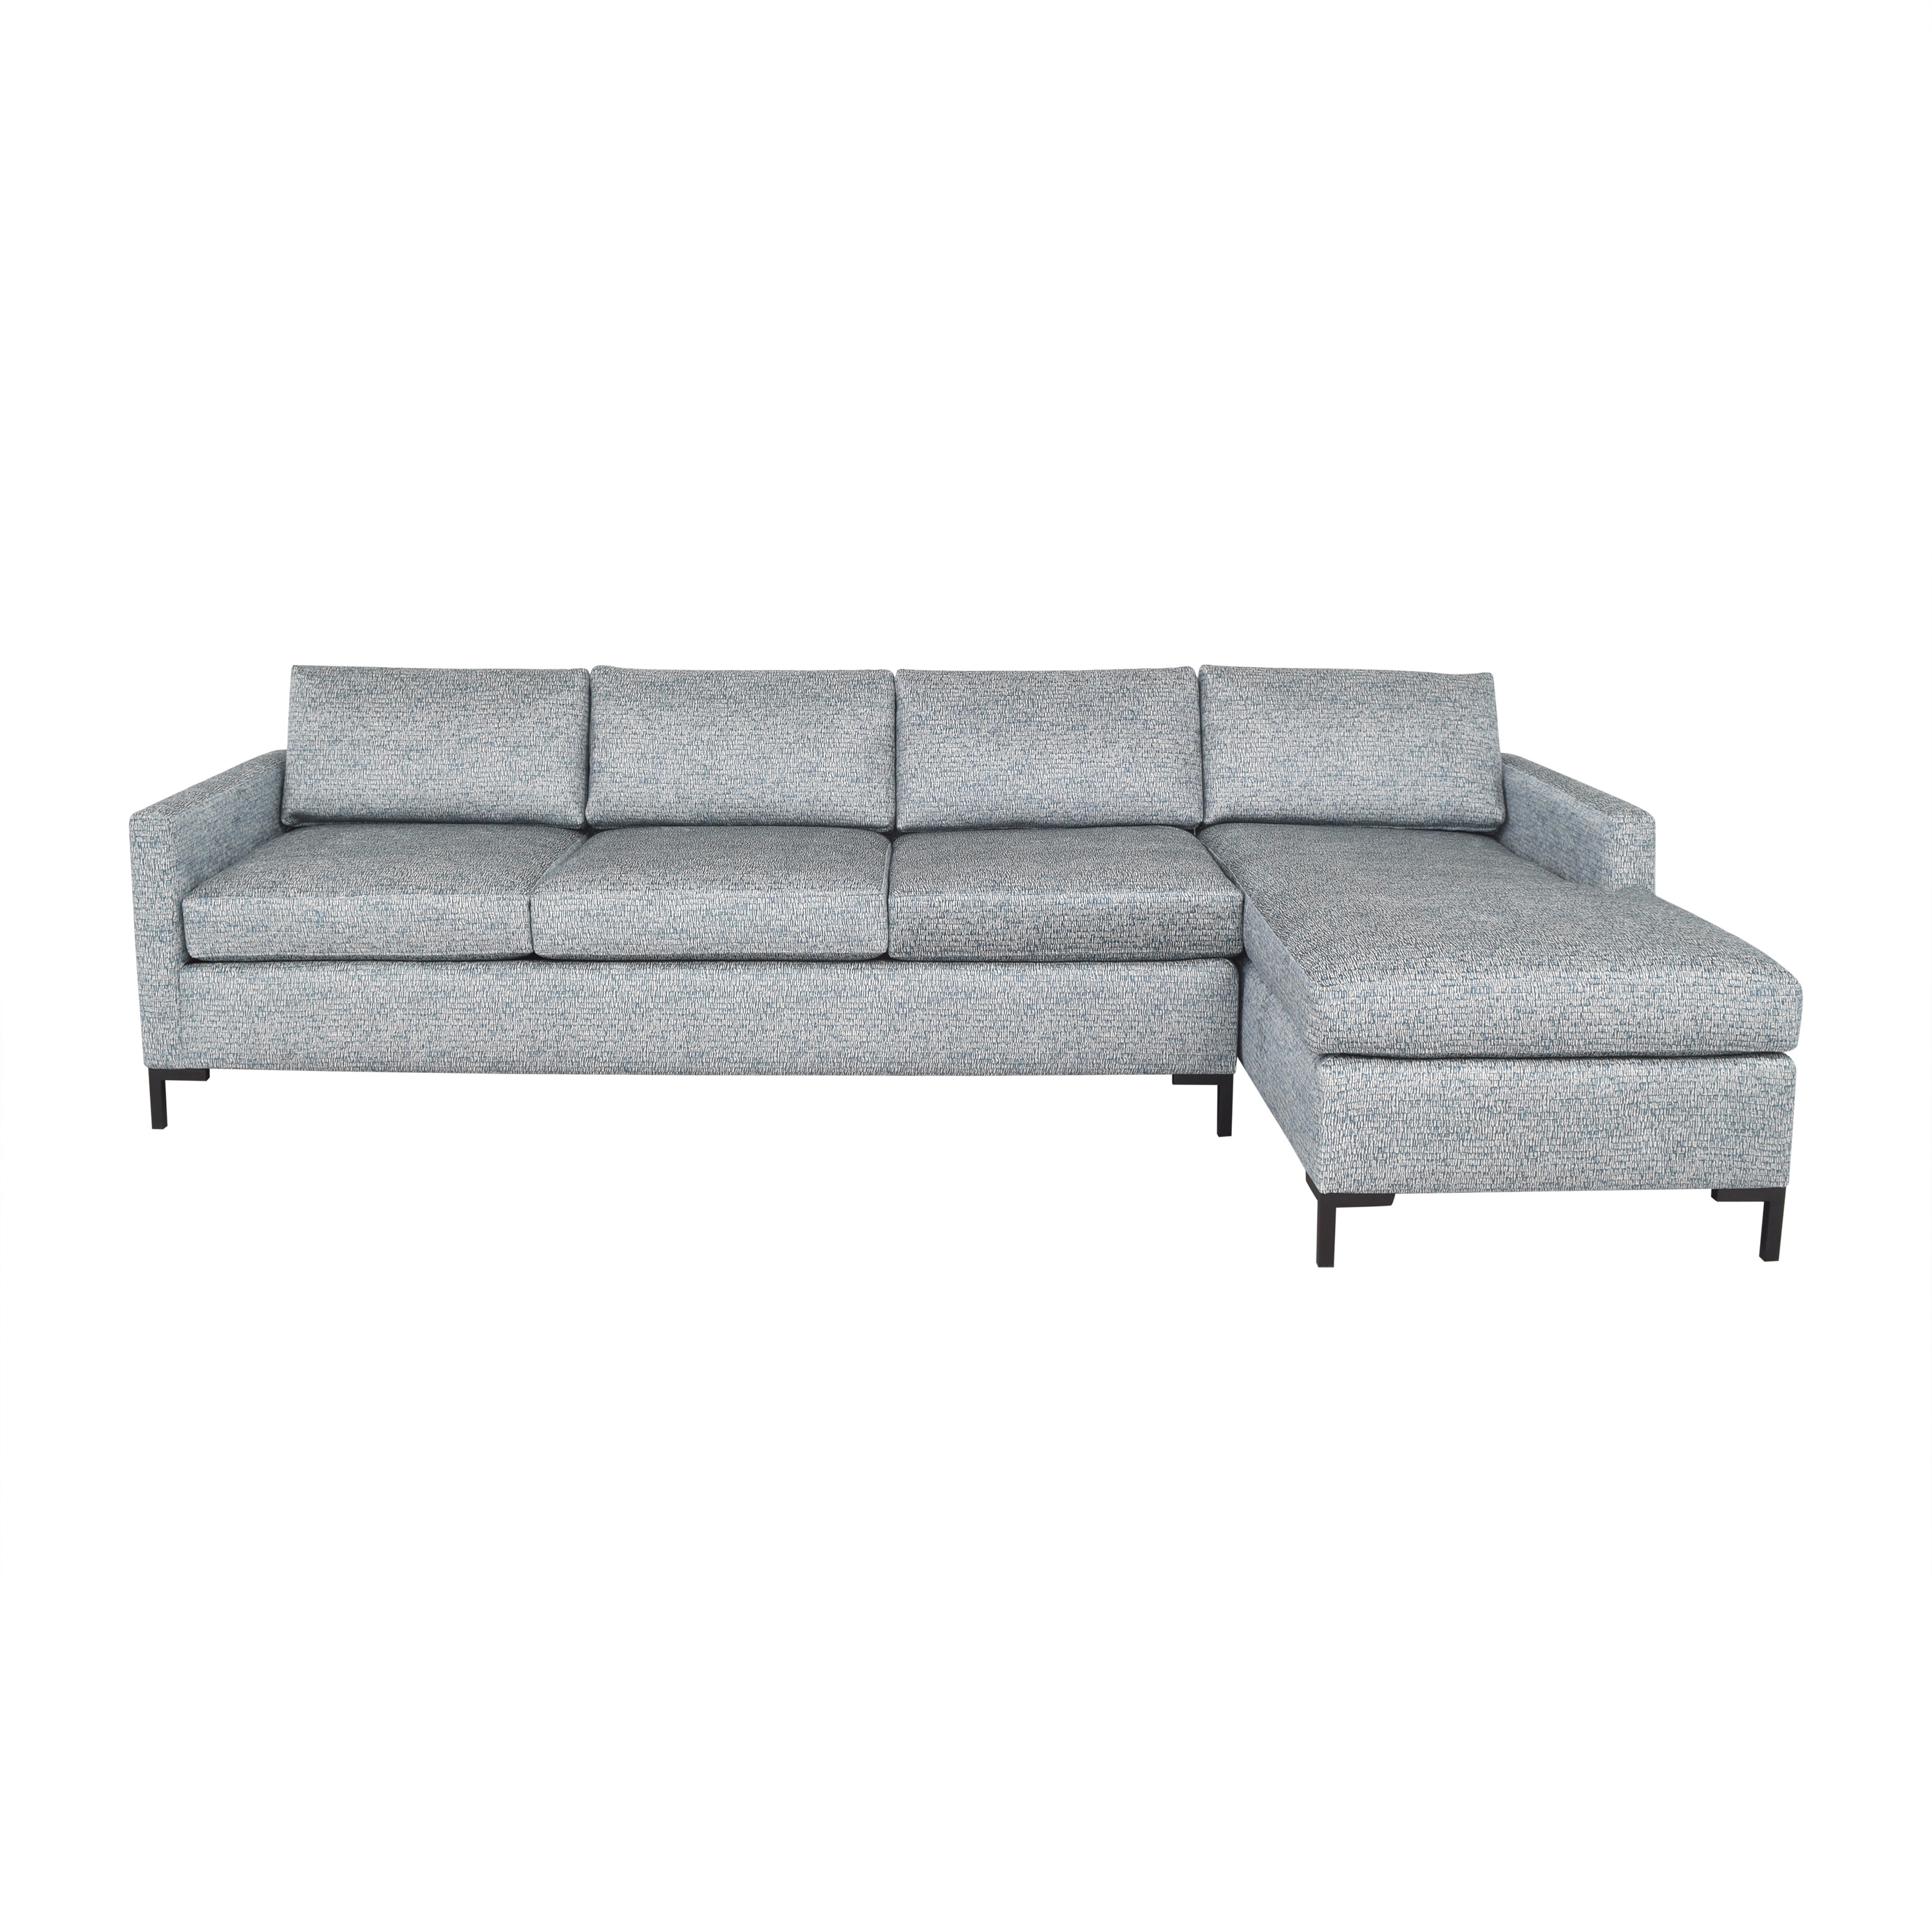 Brookline Furniture Brookline Chaise Sectional Sofa Sofas